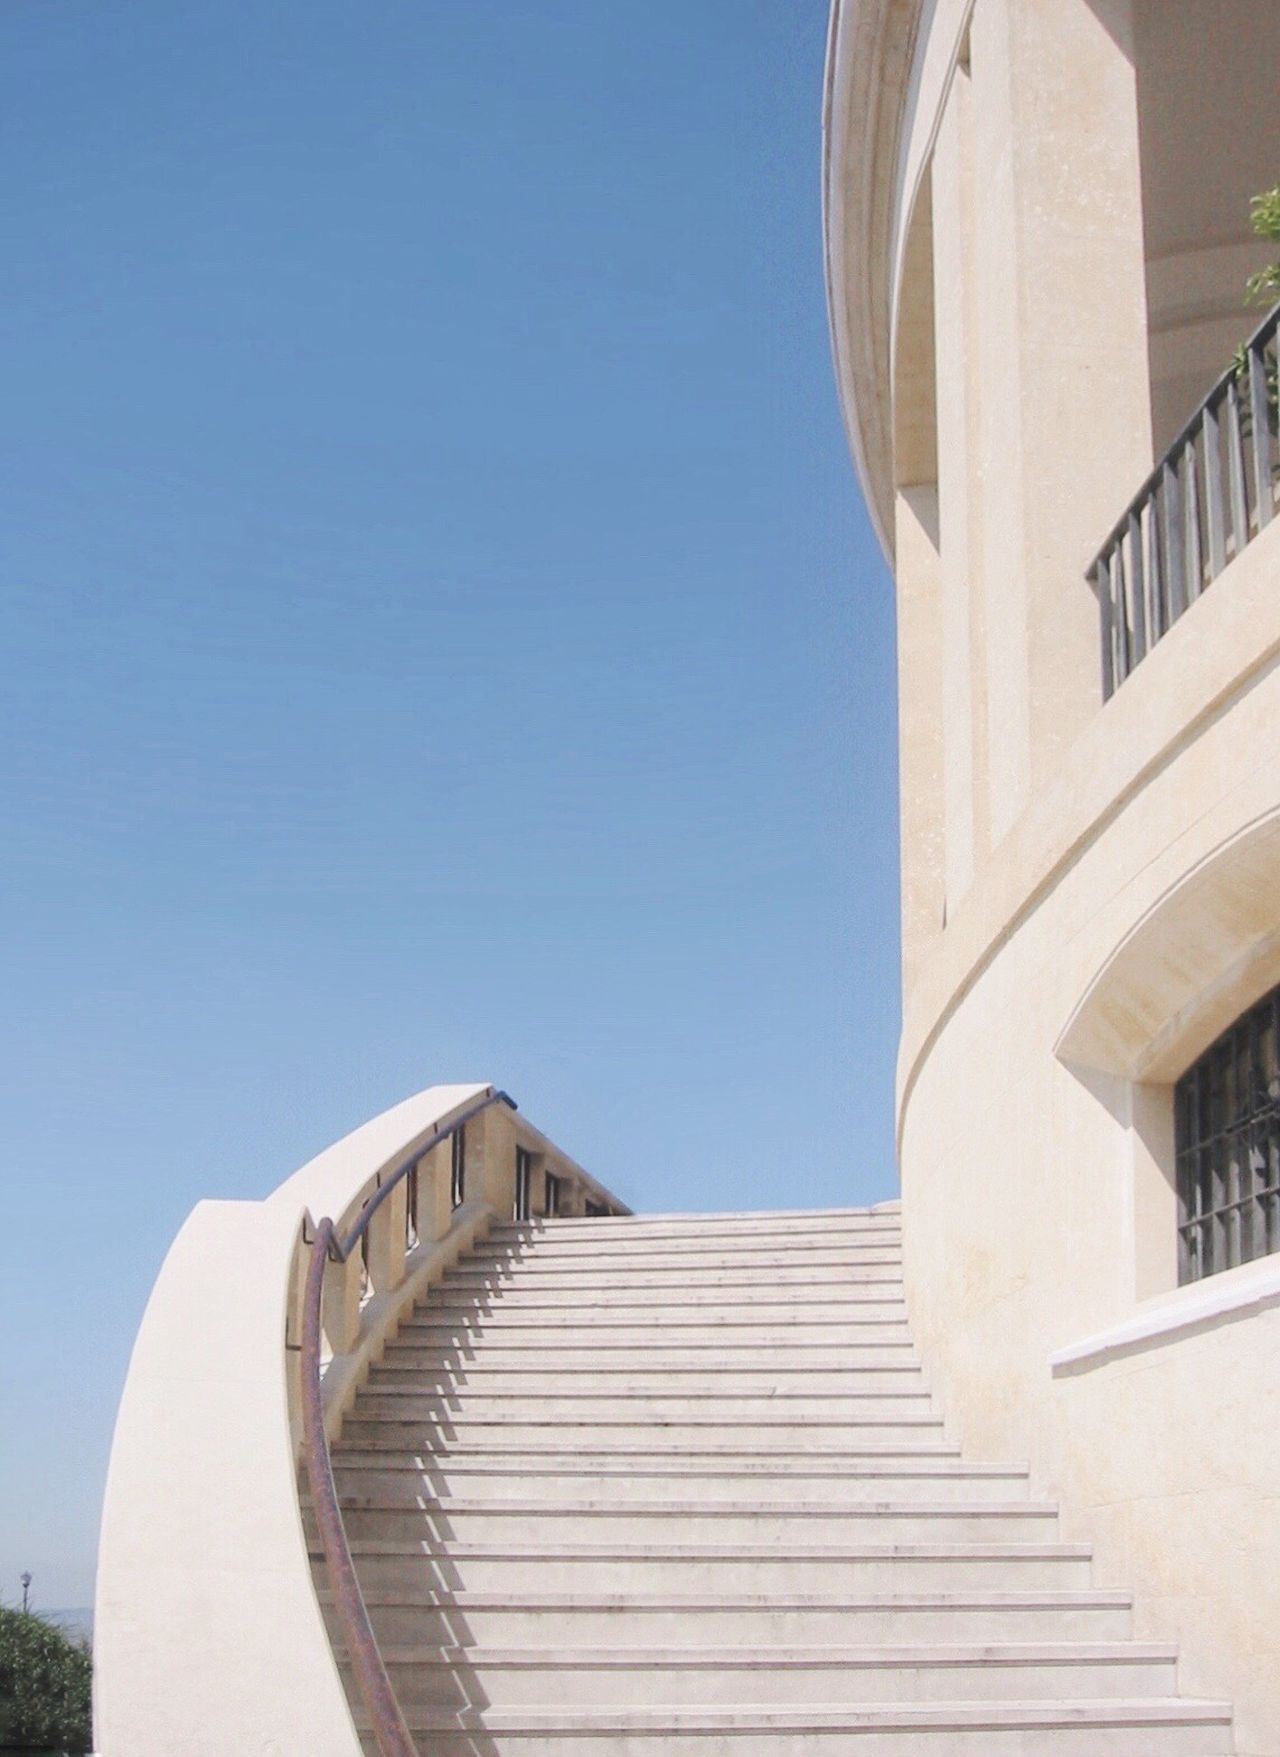 EyeEm Selects Staircase Architecture Steps And Staircases Steps Built Structure Railing Low Angle View Building Exterior Blue Sunlight Clear Sky Sky Toscana Villa Castle Rich Summer Holiday Italy Old Renaissance Stone No People Day Sommergefühle Let's Go. Together. EyeEm Selects Sommergefühle Let's Go. Together. EyeEm Selects